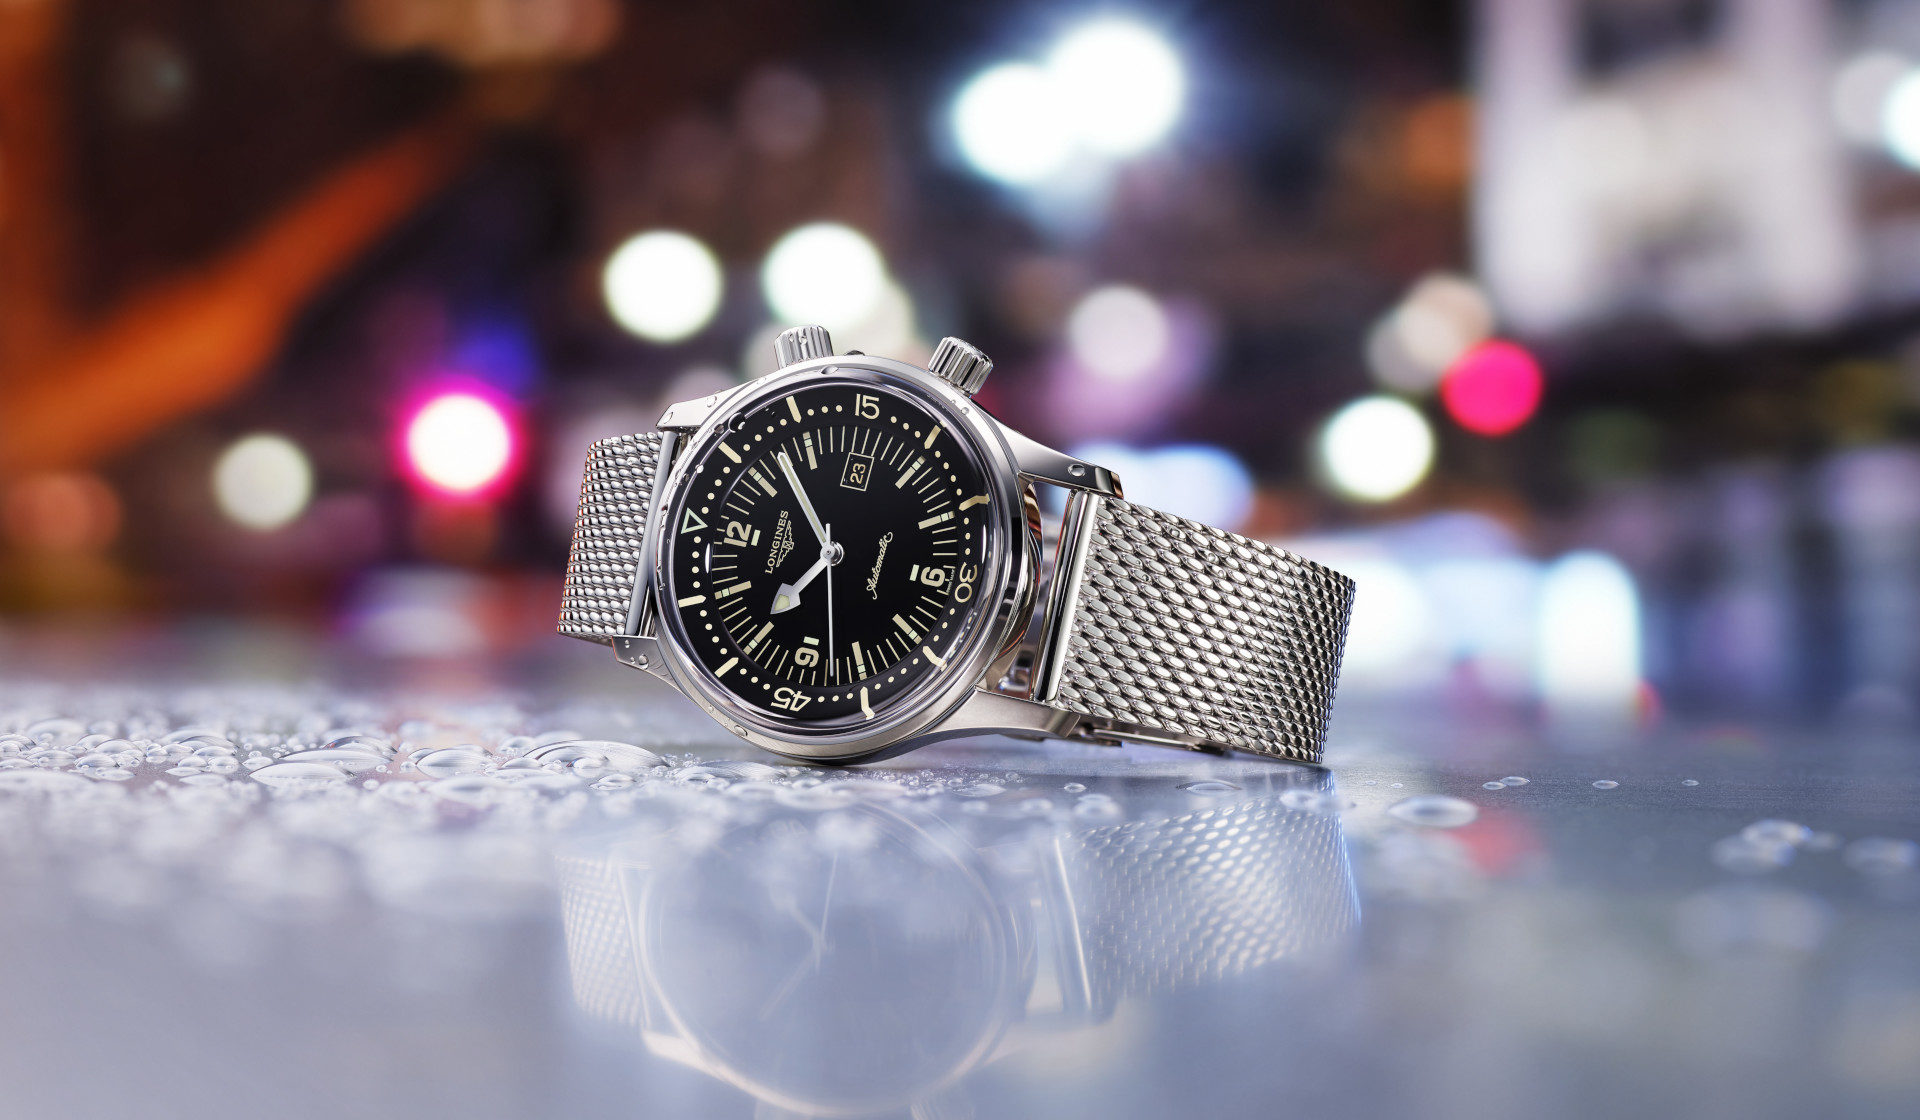 The Longines Legend Diver finally comes in a 36mm case fitting of the era it was inspired from